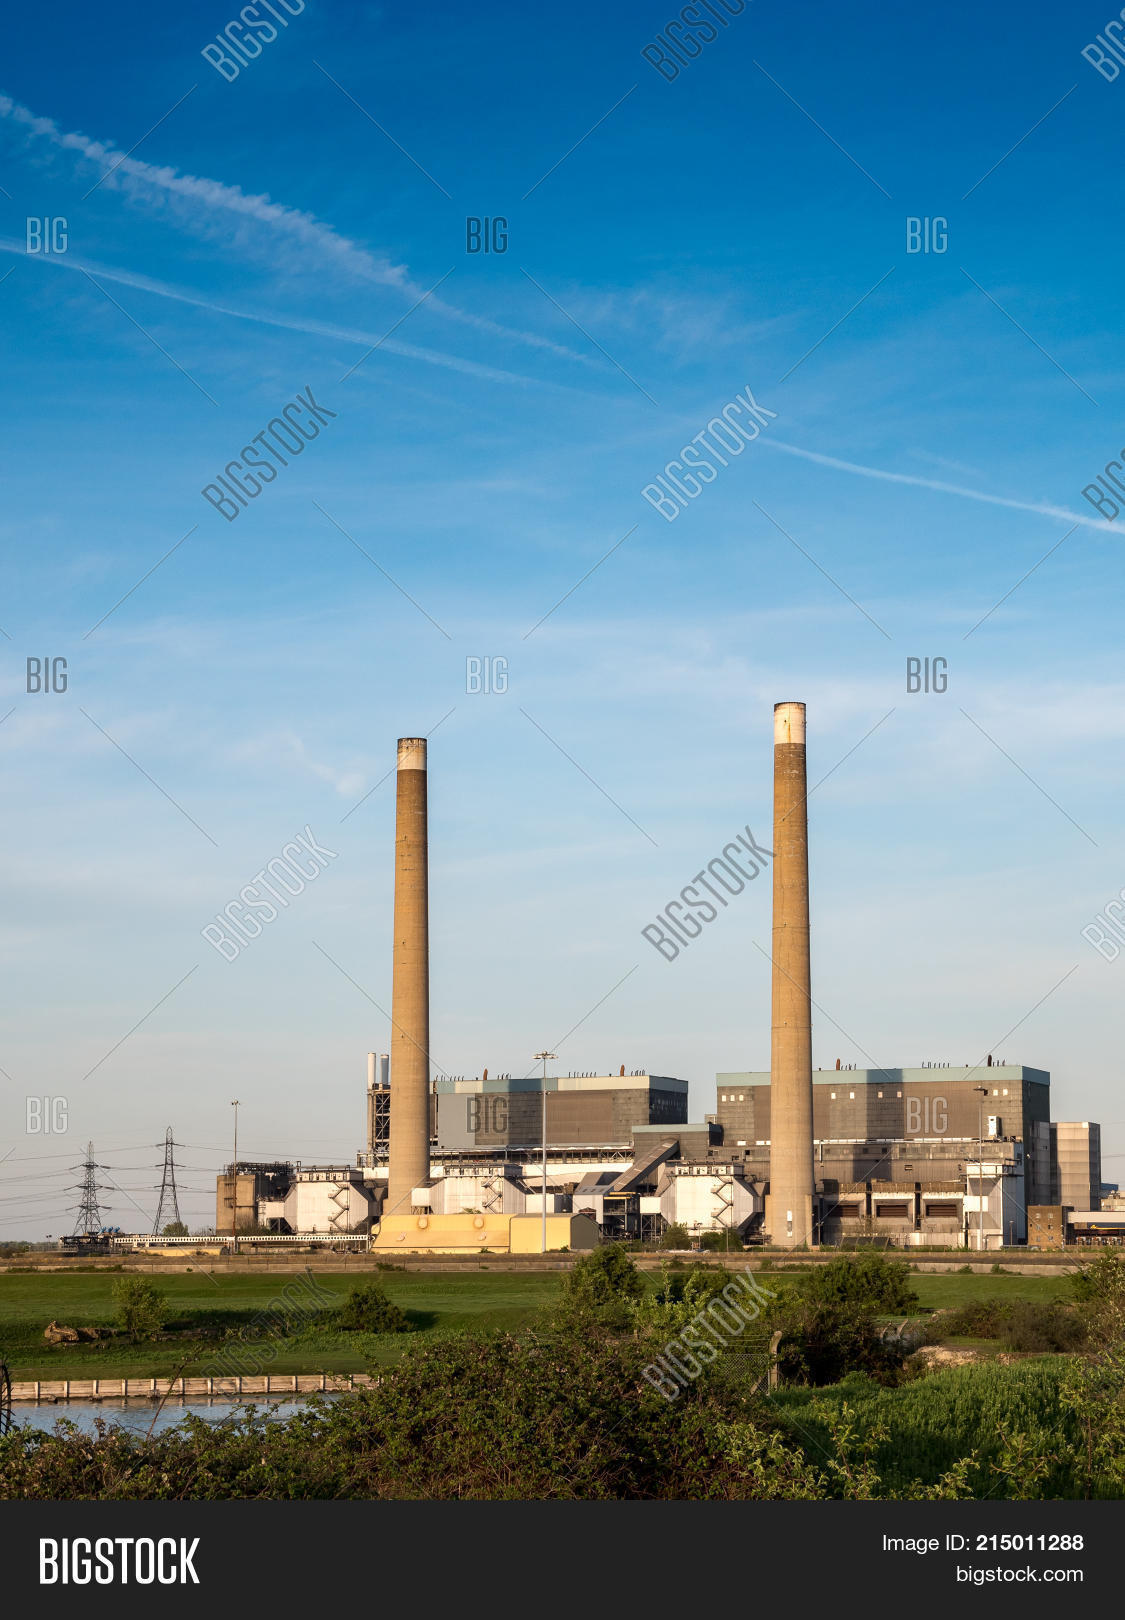 Decommissioned Coal Image Photo Free Trial Bigstock Electrical National Grid The Powered Tilbury Power Stations On North Bank Of River Thames With